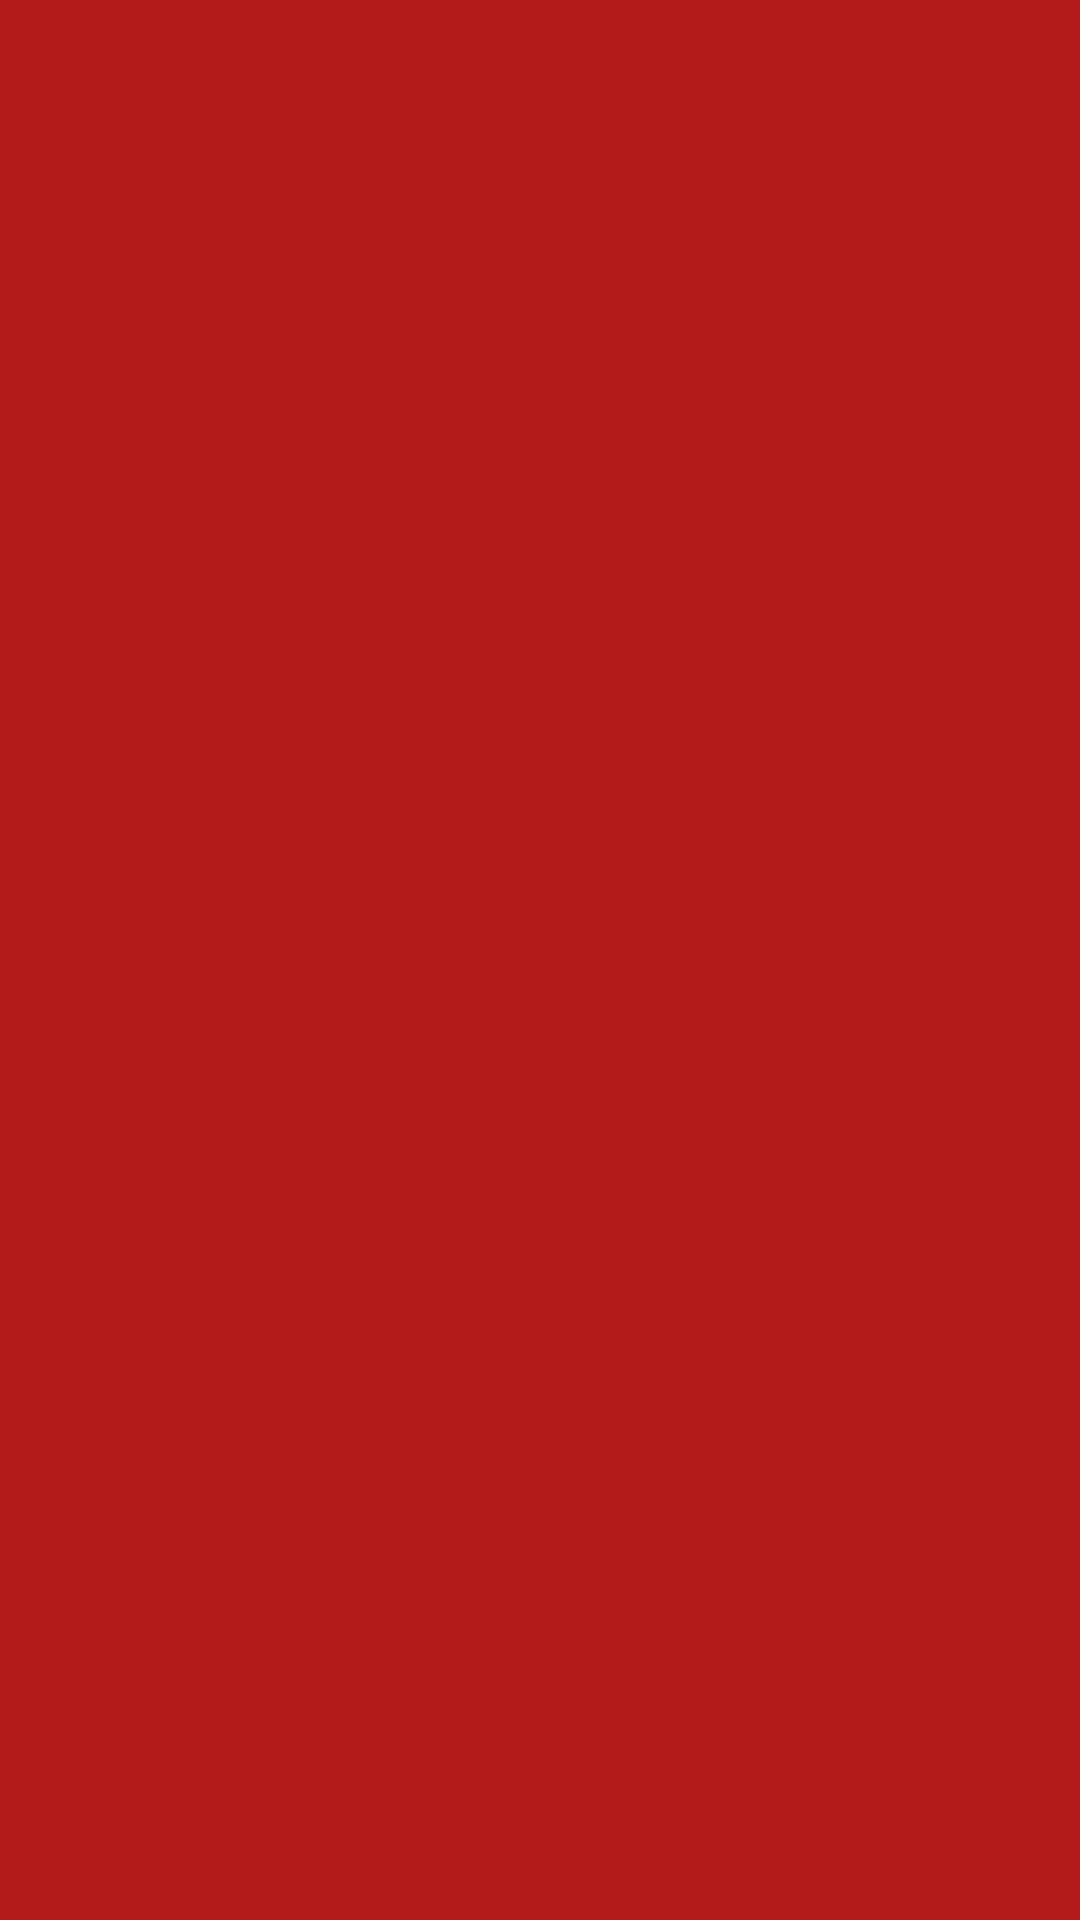 1080x1920 Cornell Red Solid Color Background